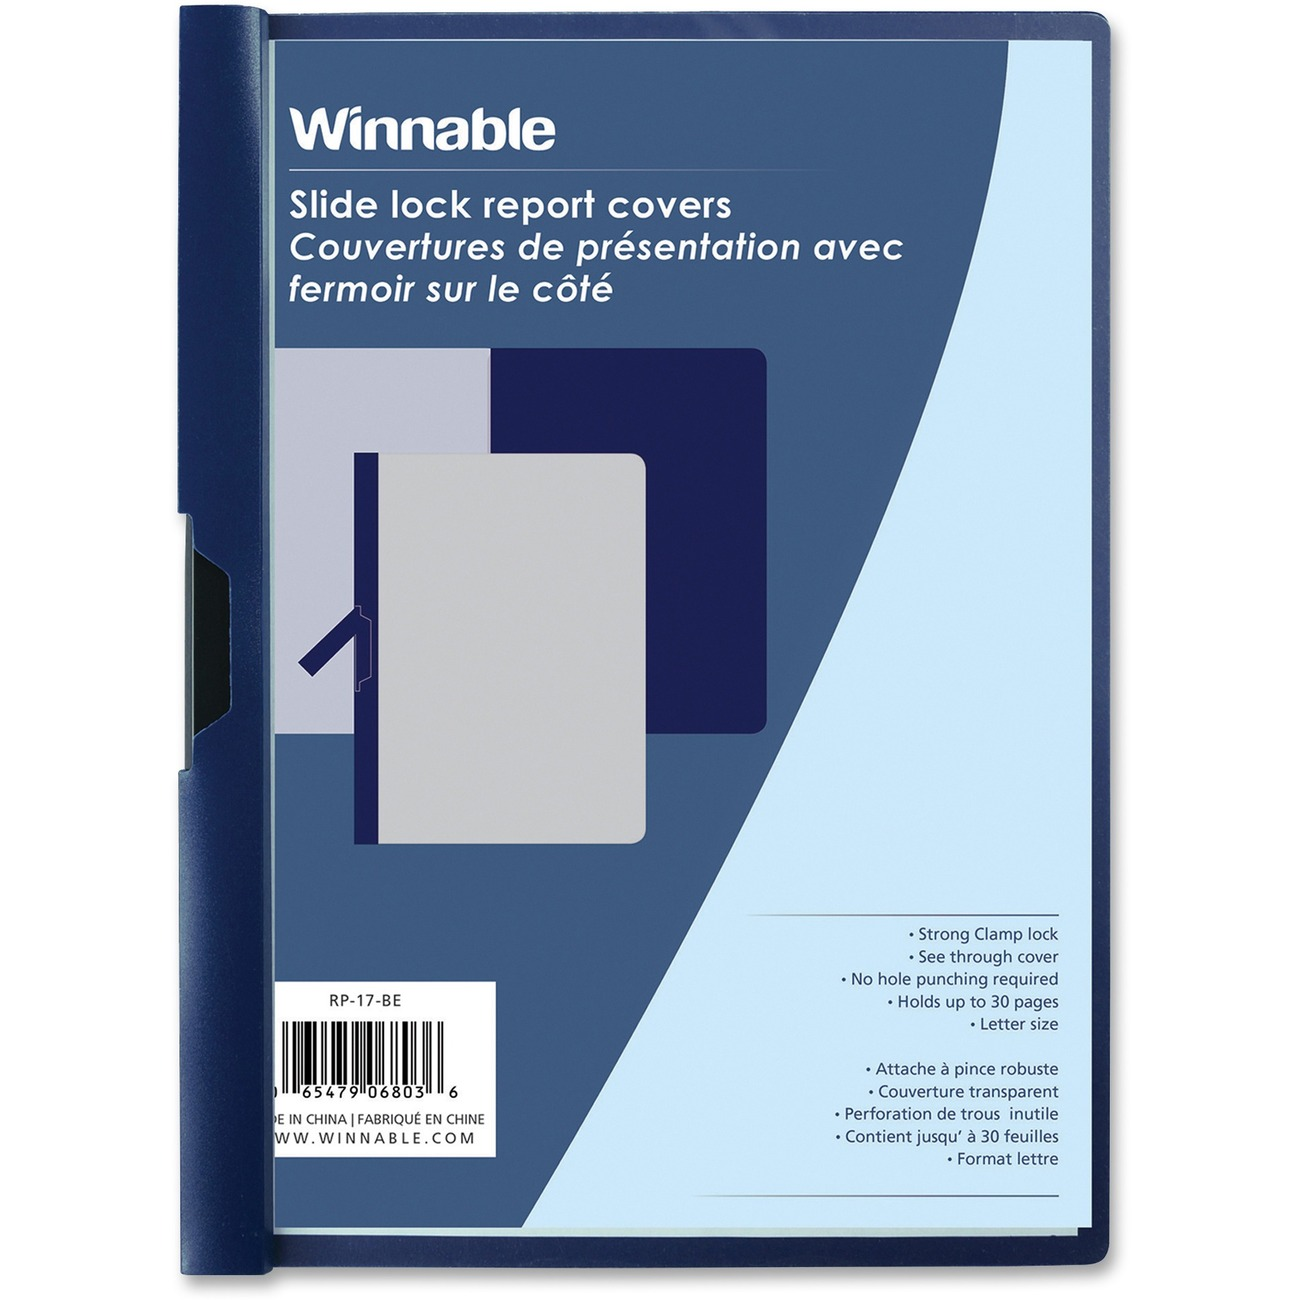 West coast office supplies office supplies filing supplies side lock report cover features strong clamp lock to secure documents and see through cover for customized title pages holds up to 30 pages with no hole madrichimfo Choice Image